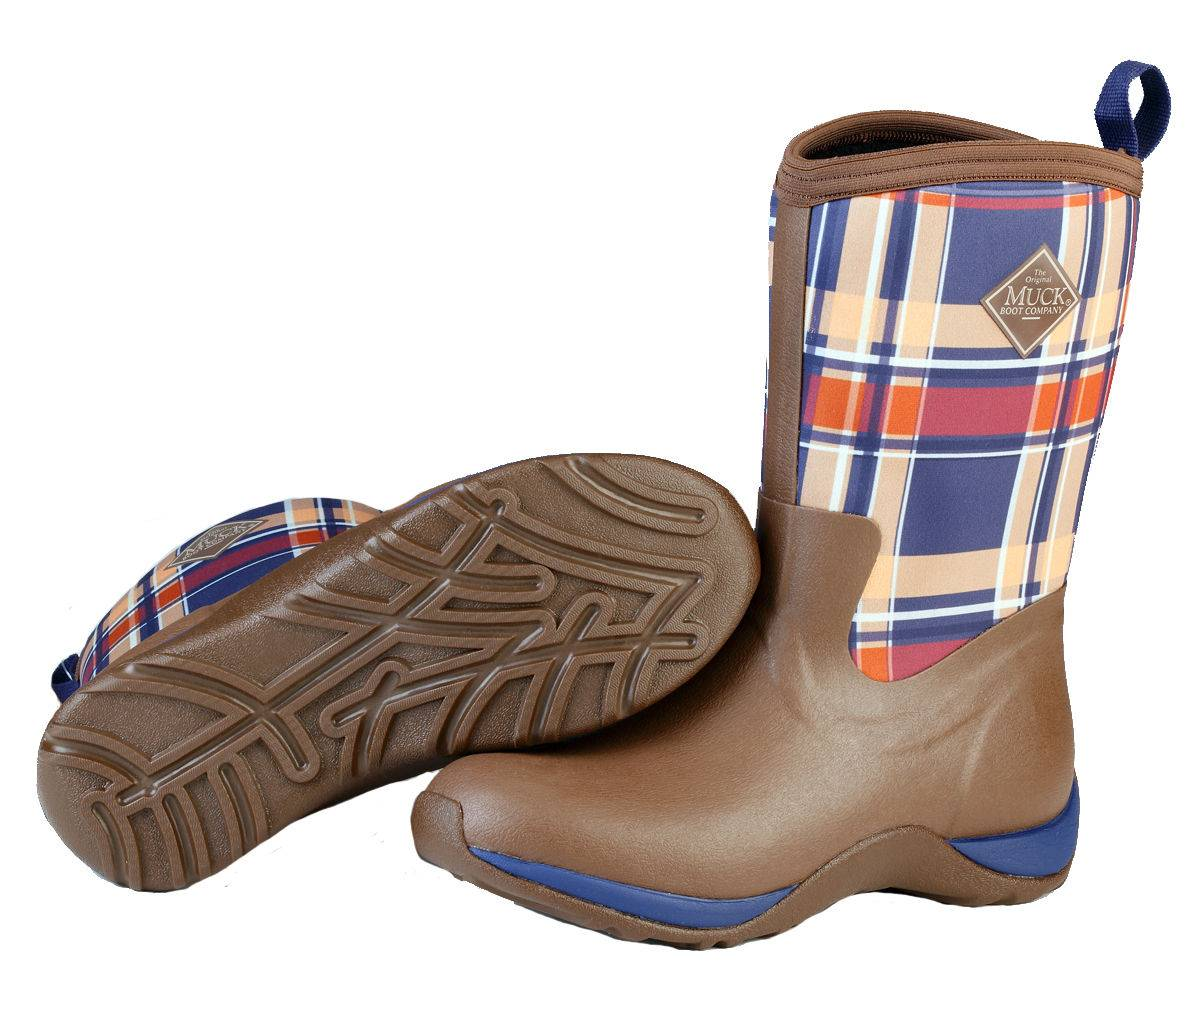 Muck Boots Women's Arctic Weekend - Brown/Navy Plaid